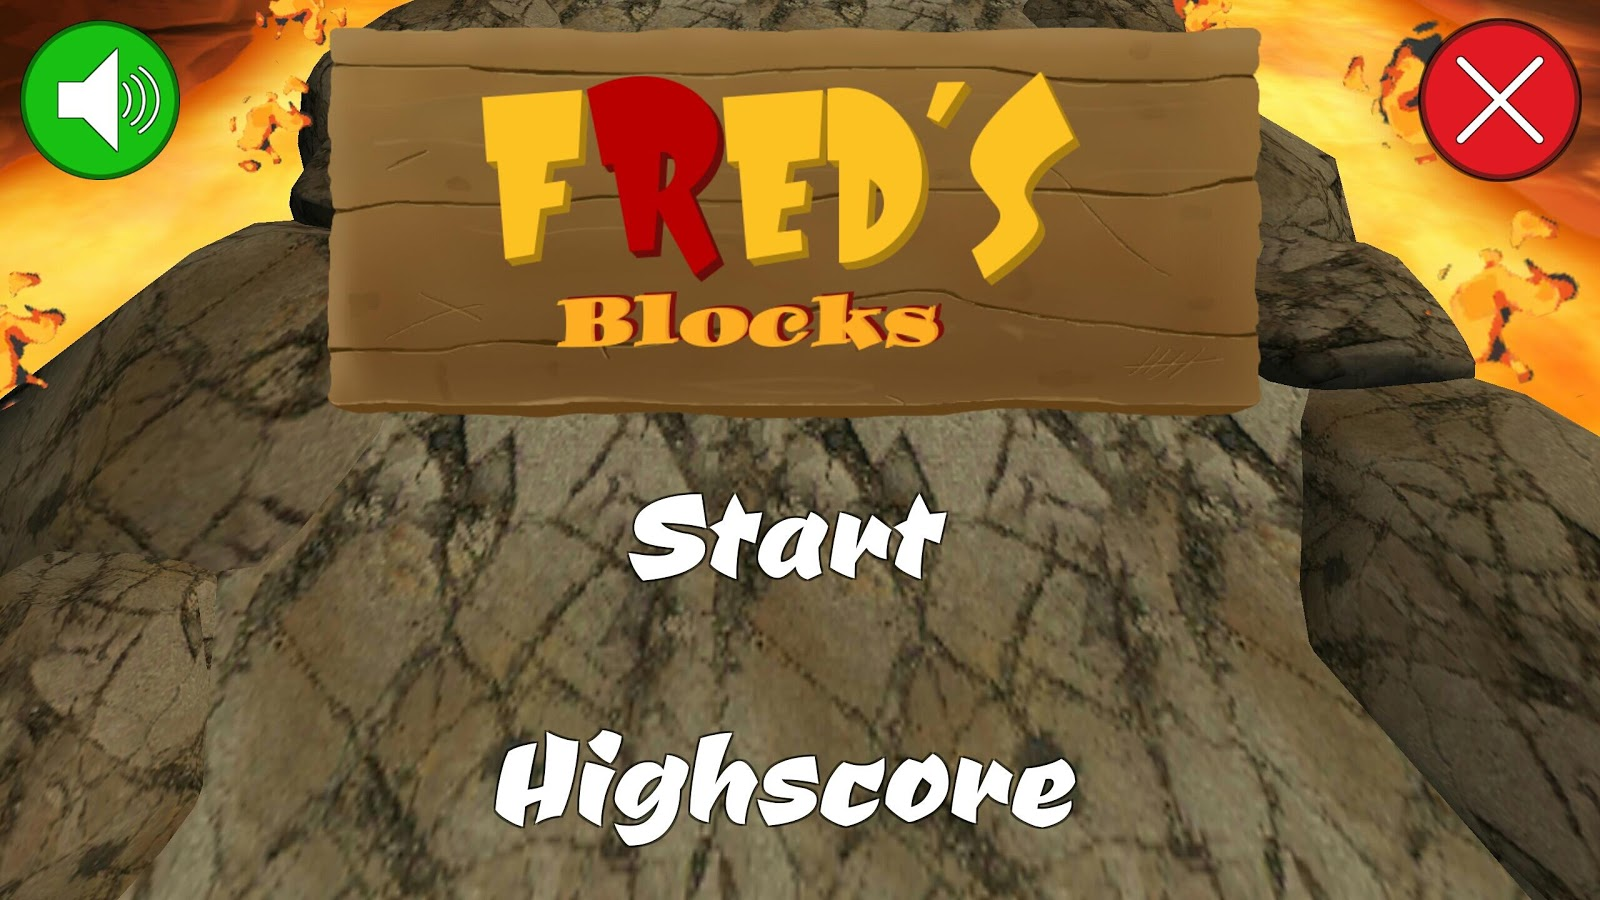 Crush Red Blocks - FRed Blocks- screenshot